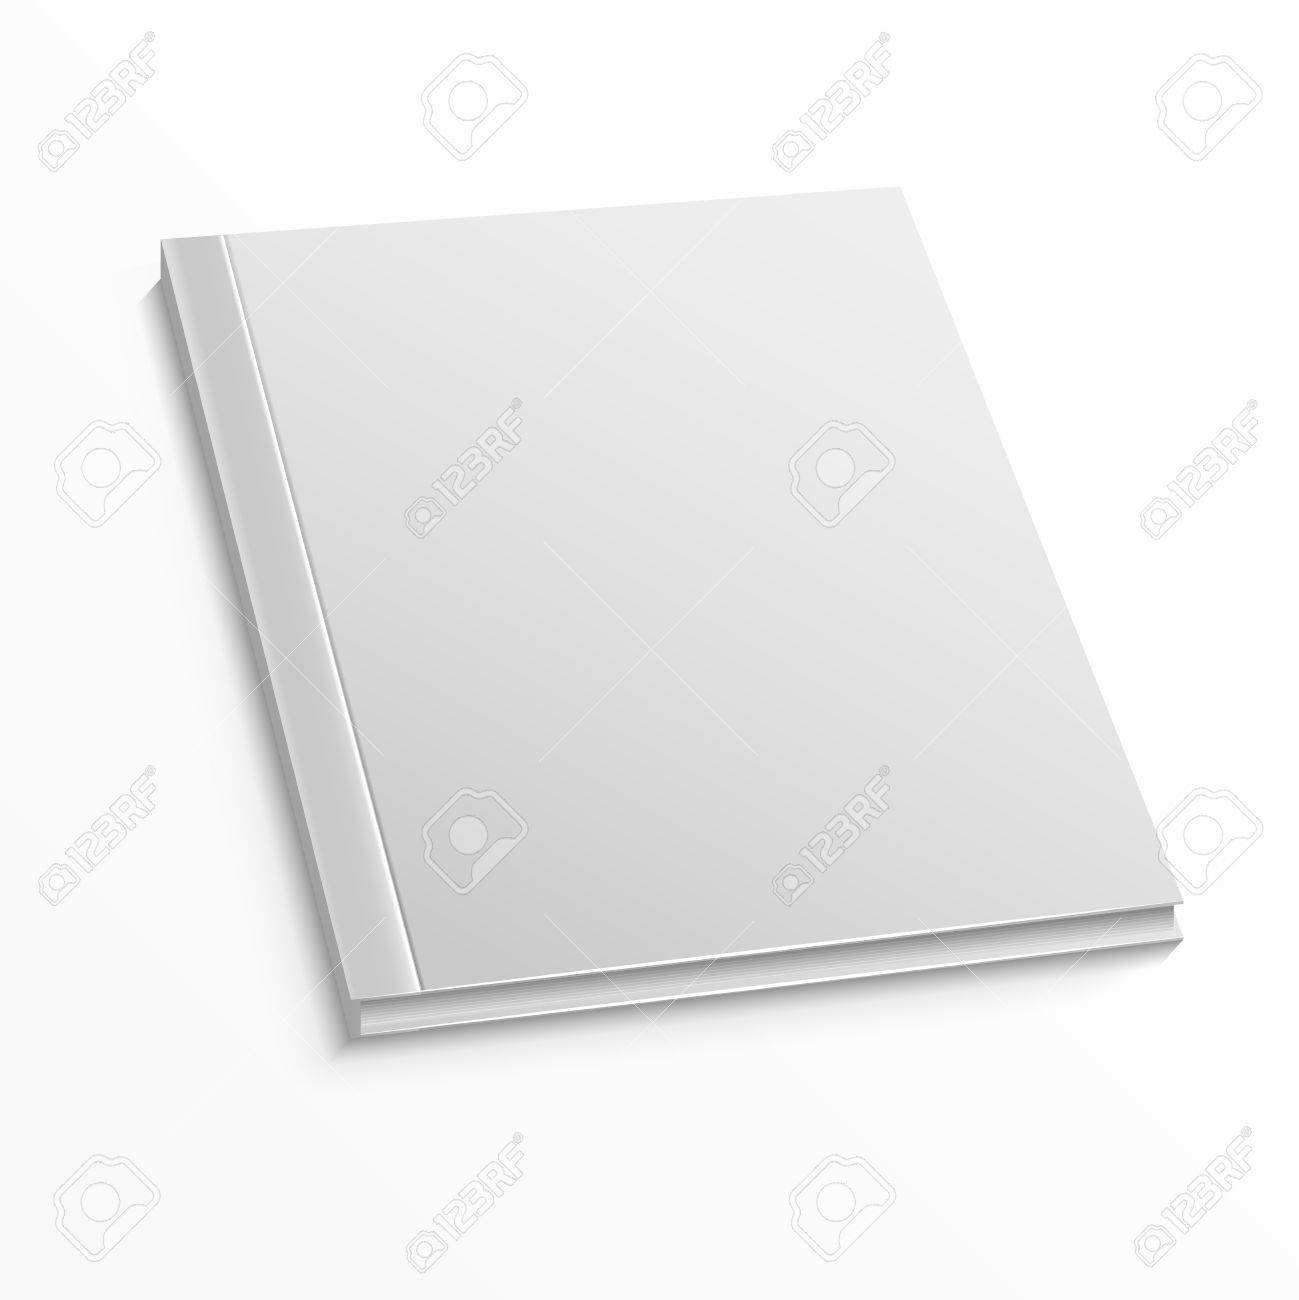 blank magazine cover template on white background mockup for blank magazine cover template on white background mockup for book or magazine blank mockup